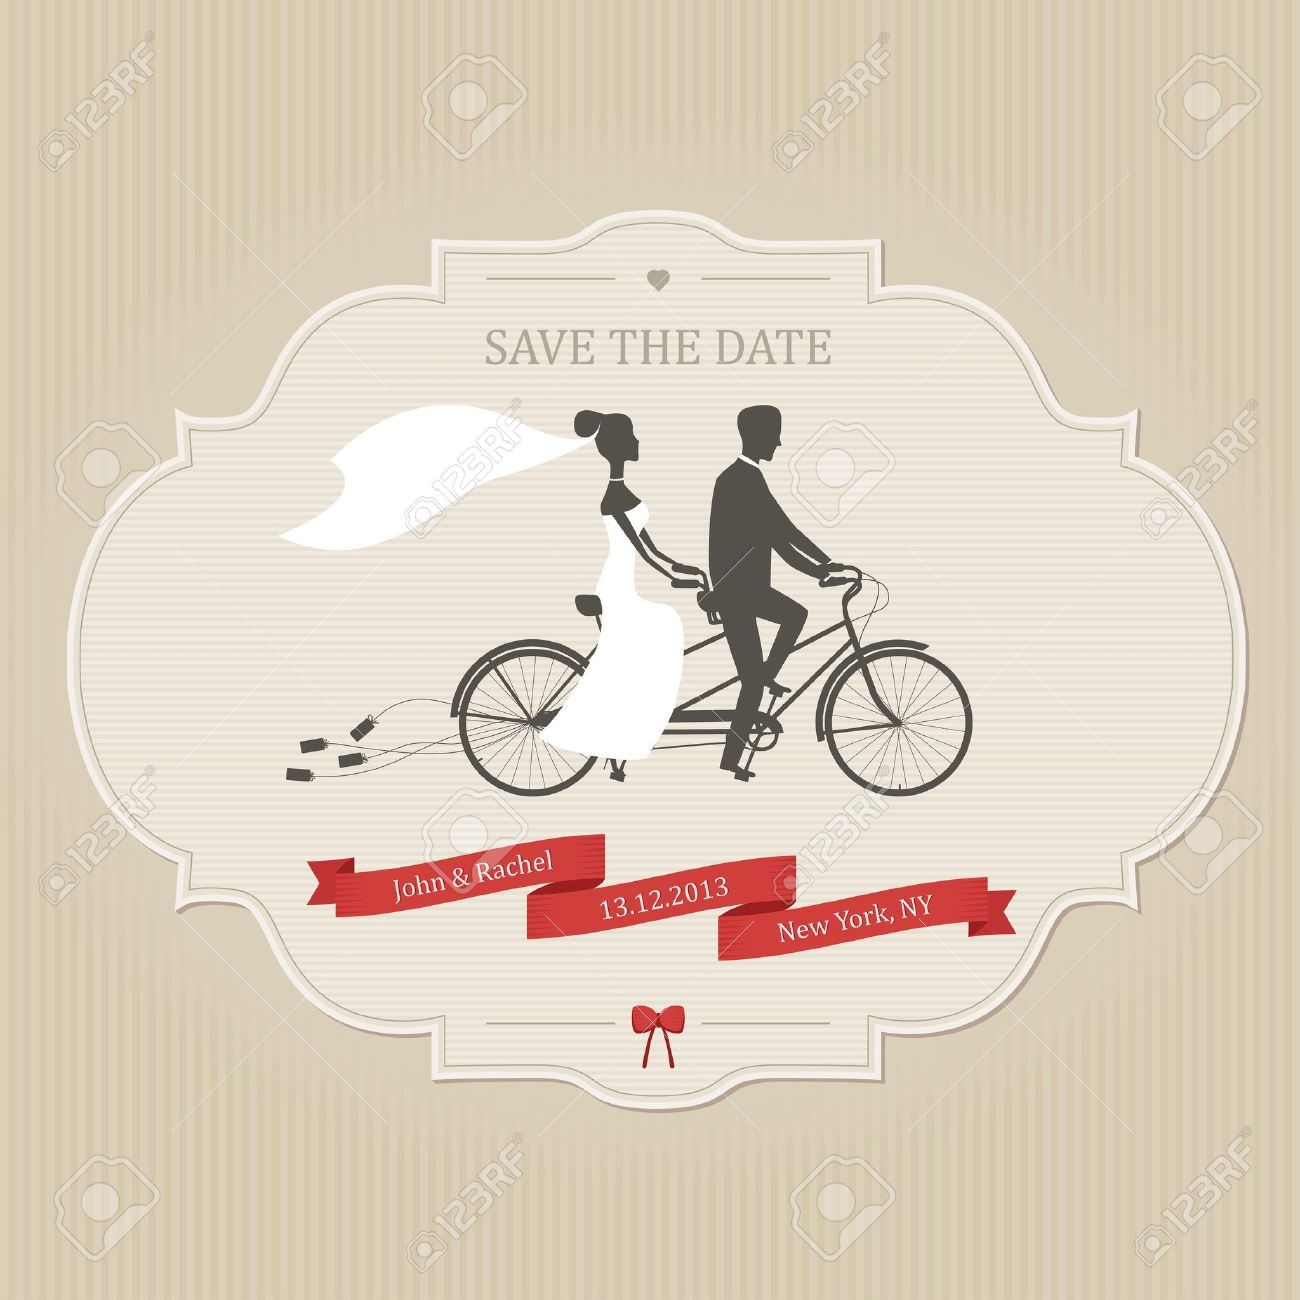 Funny Wedding Invitation With Bride And Groom Riding Tandem Bicycle ...